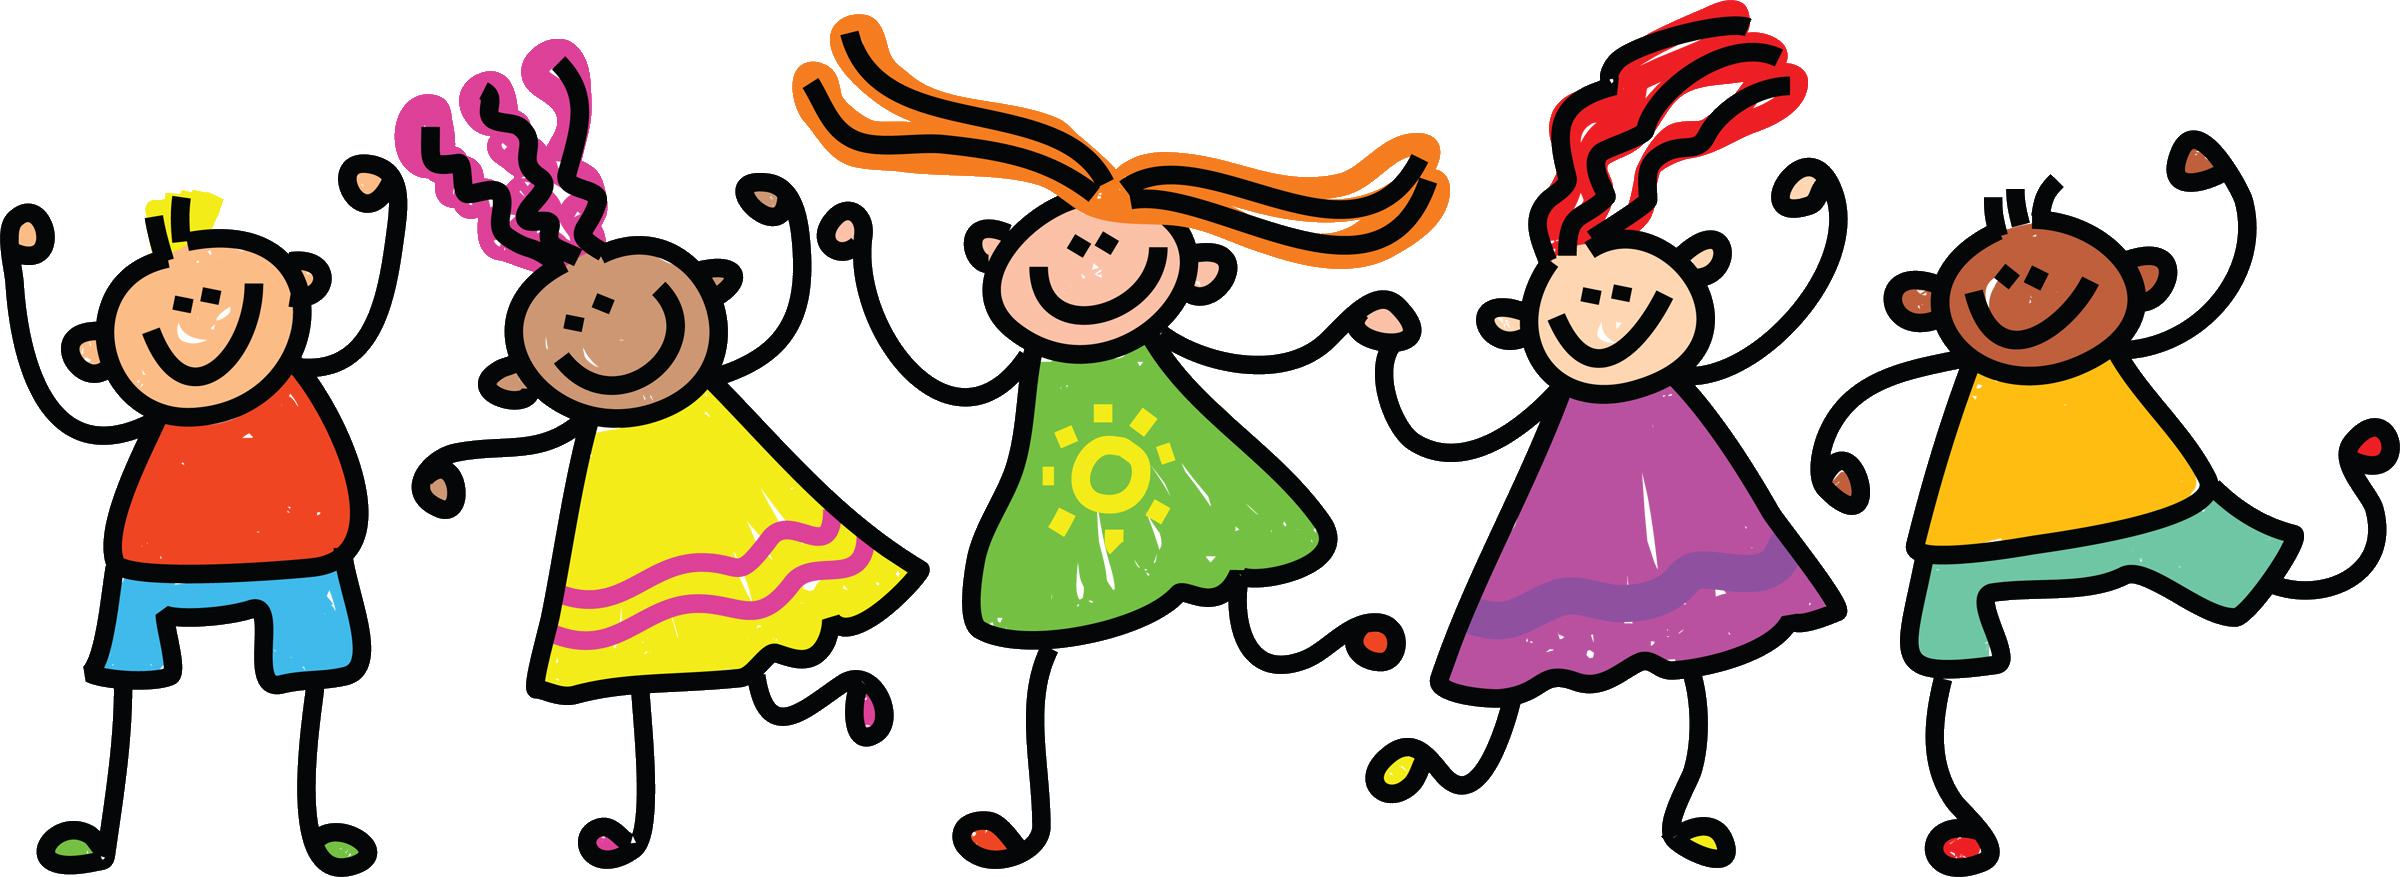 Friendship clipart multicultural.  collection of child